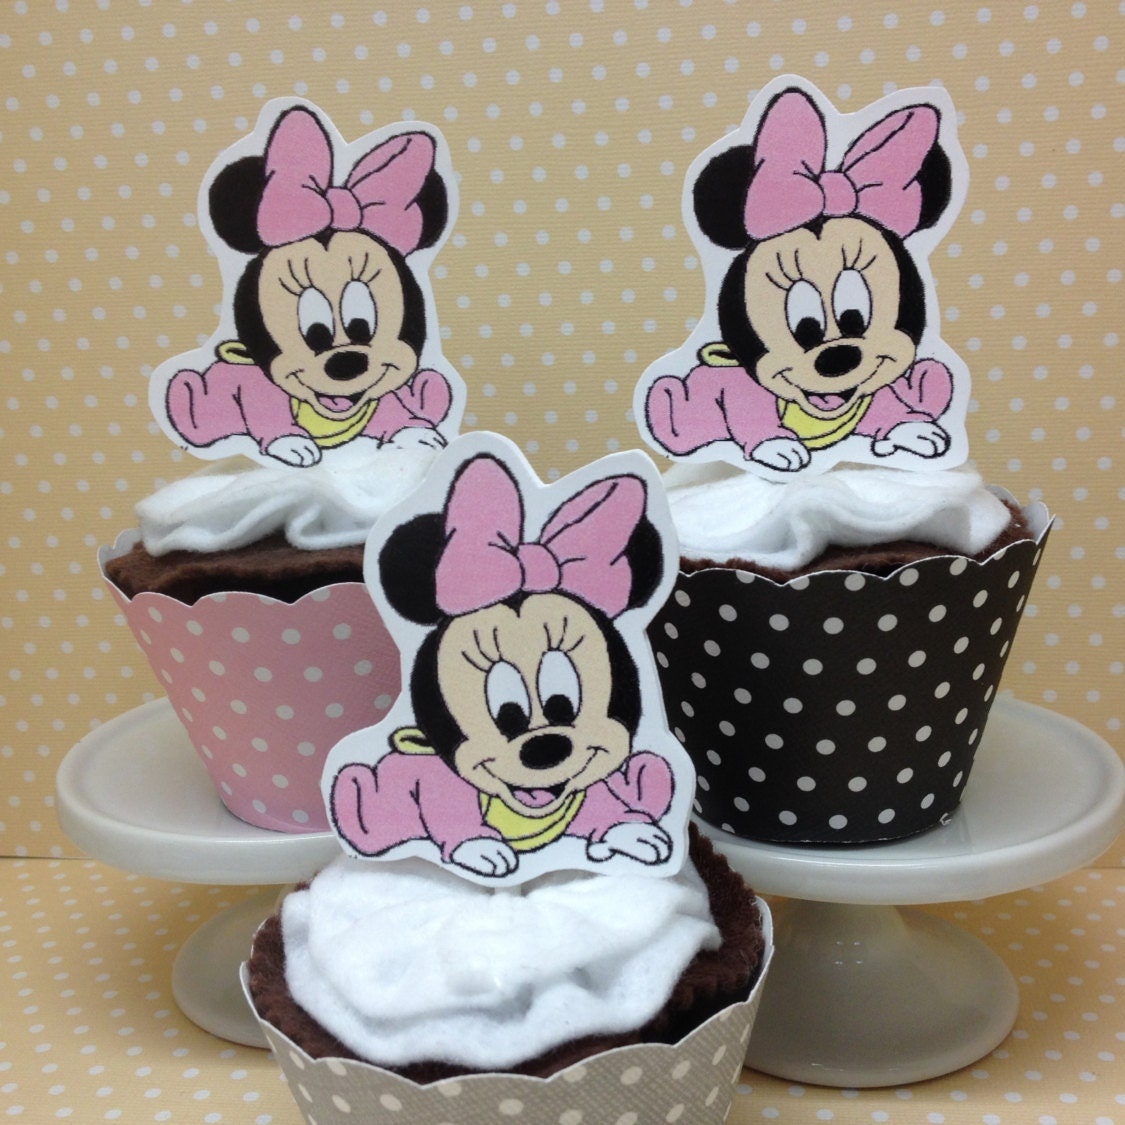 Baby Minnie Mouse Cupcake Toppers | www.imgkid.com - The ...